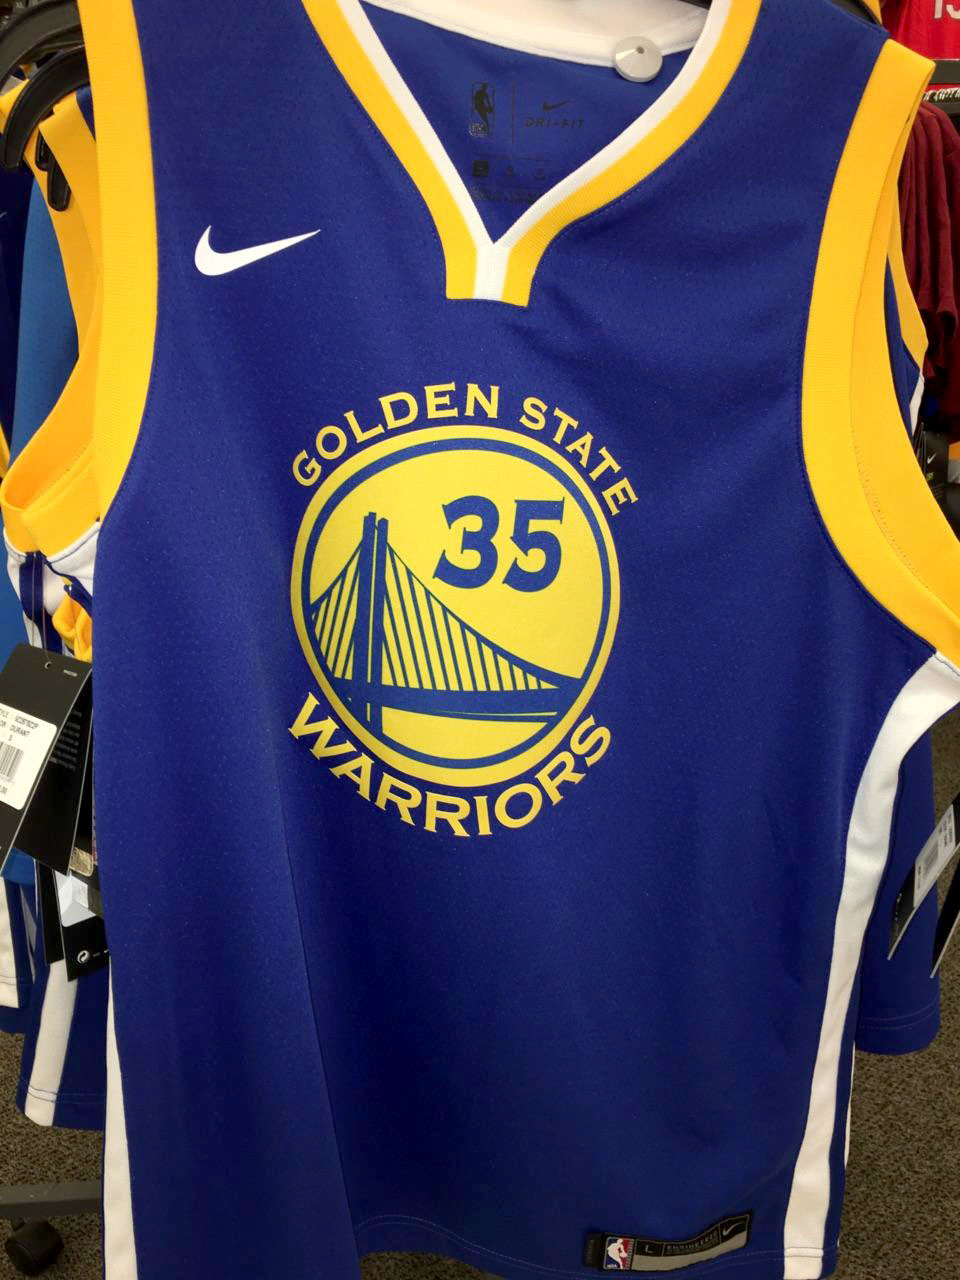 The San Francisco Warriors jersey at Dicks Sporting Goods for 75$.